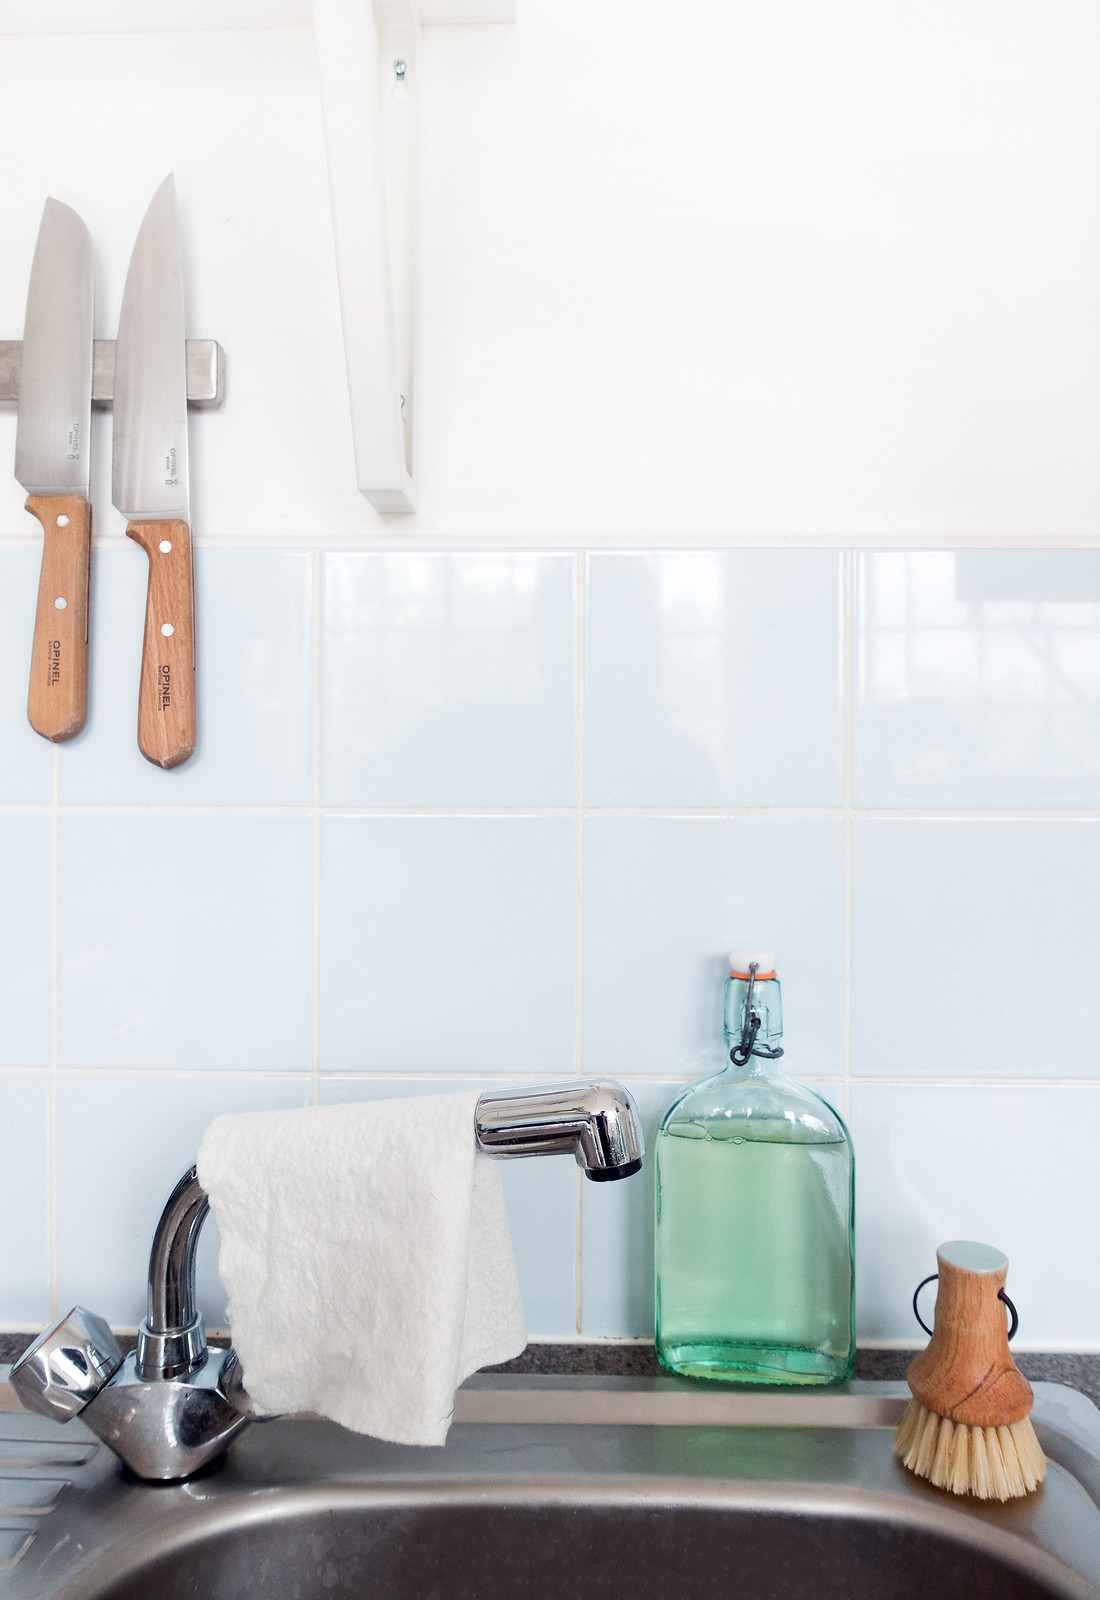 Make The Switch To Green HouseHold Products and Save Money